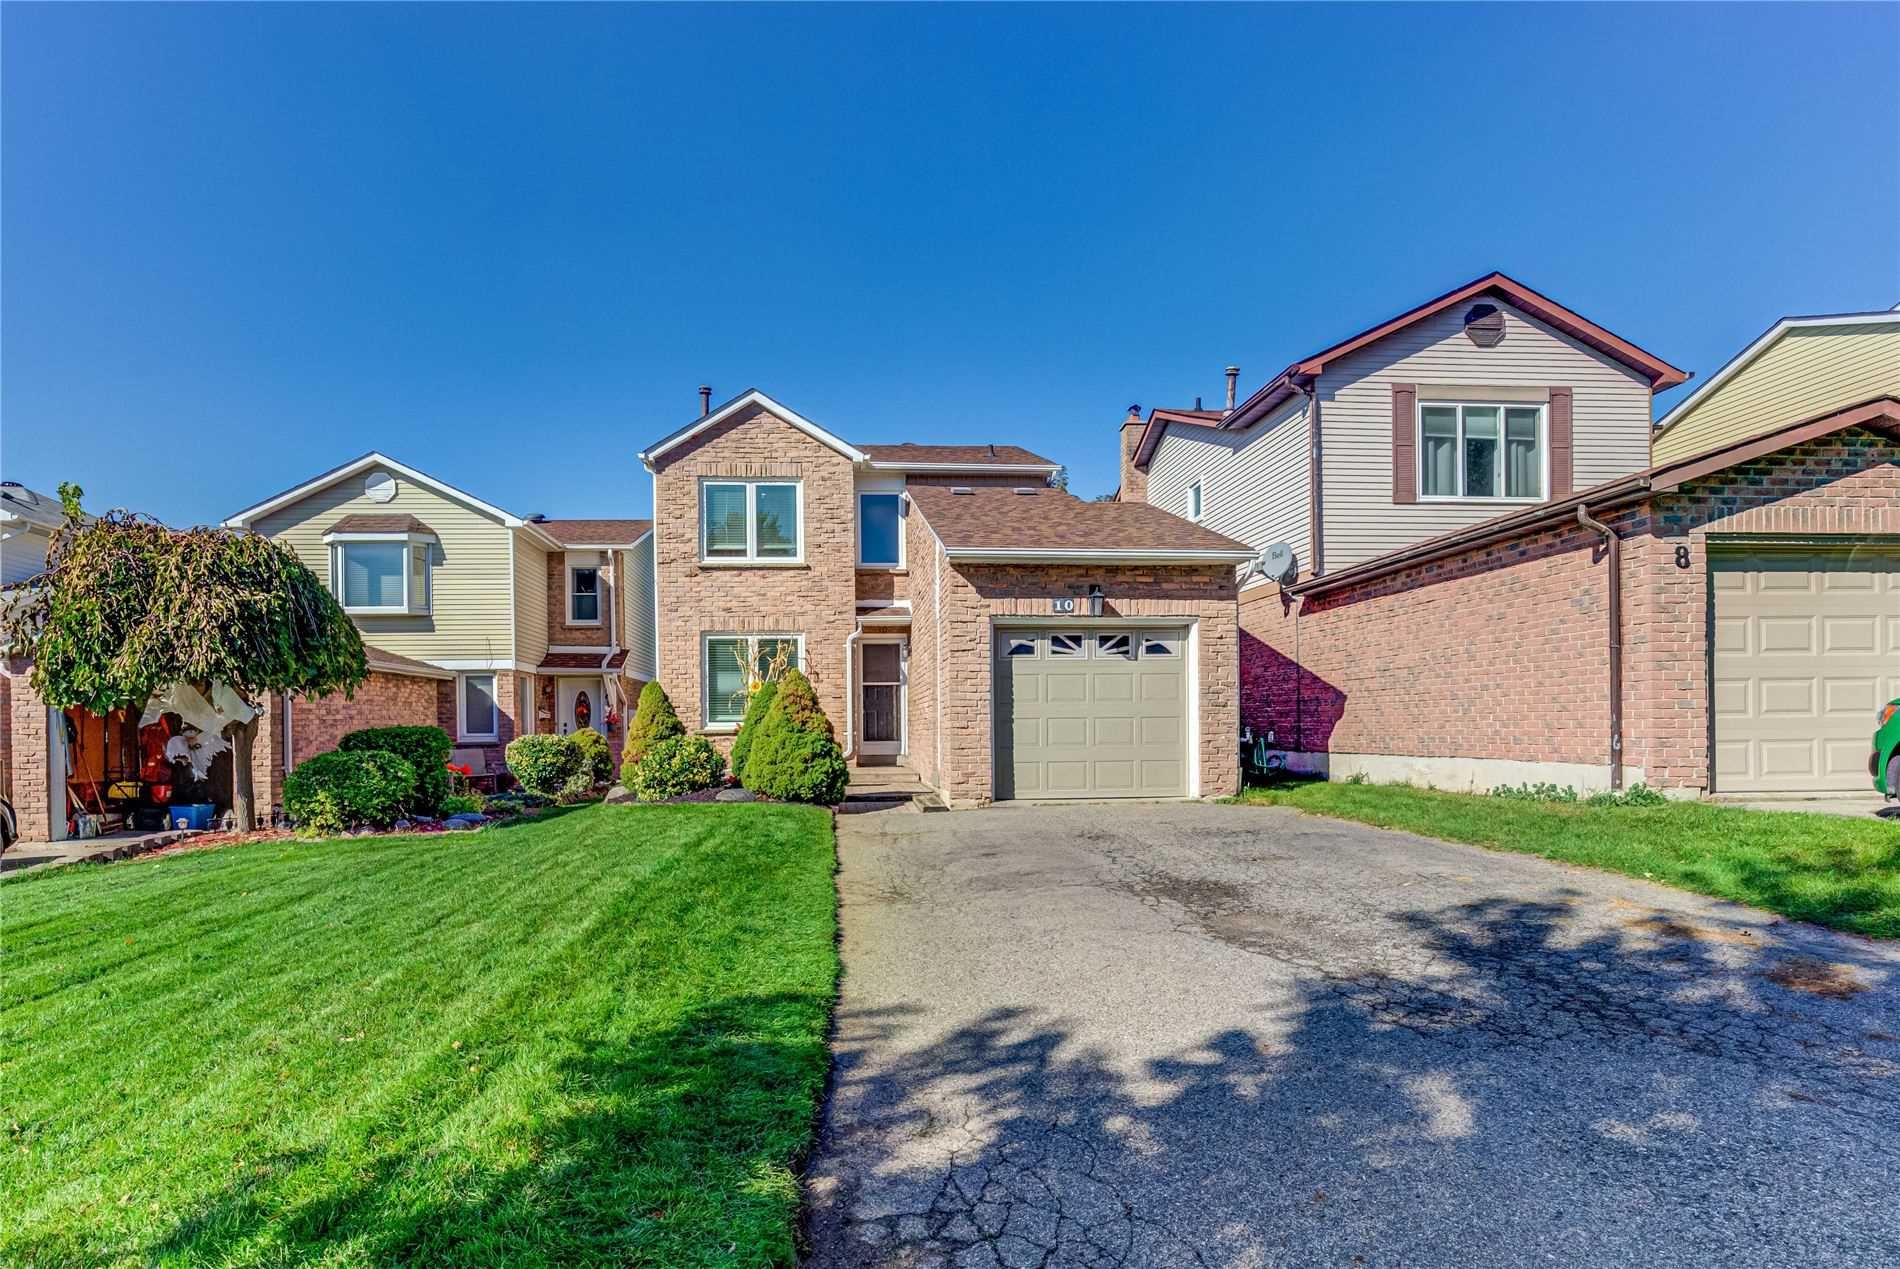 10 Janedale Cres, Whitby, ON L1N6Z5 - MLS#: E5412132